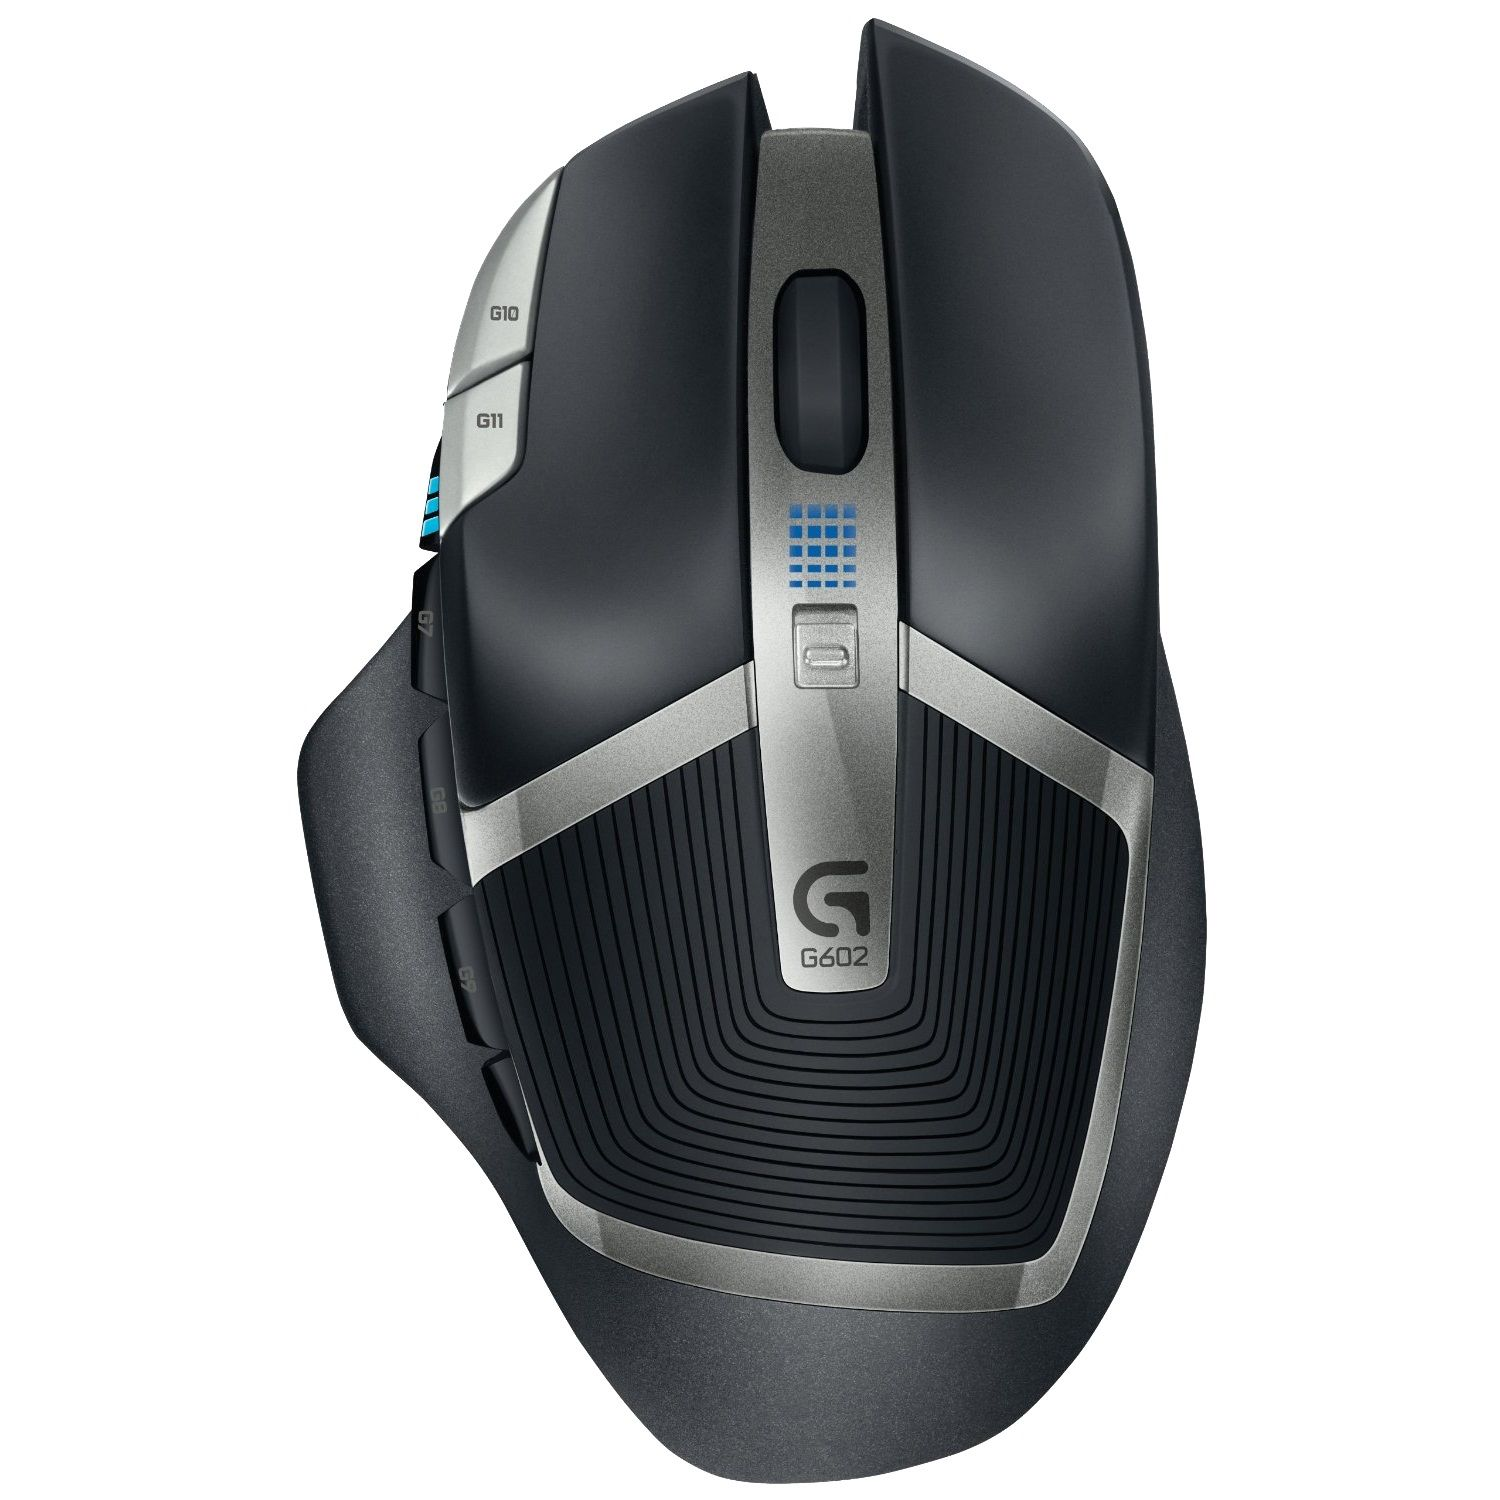 Mouse Wireless Logitech G602 Negru